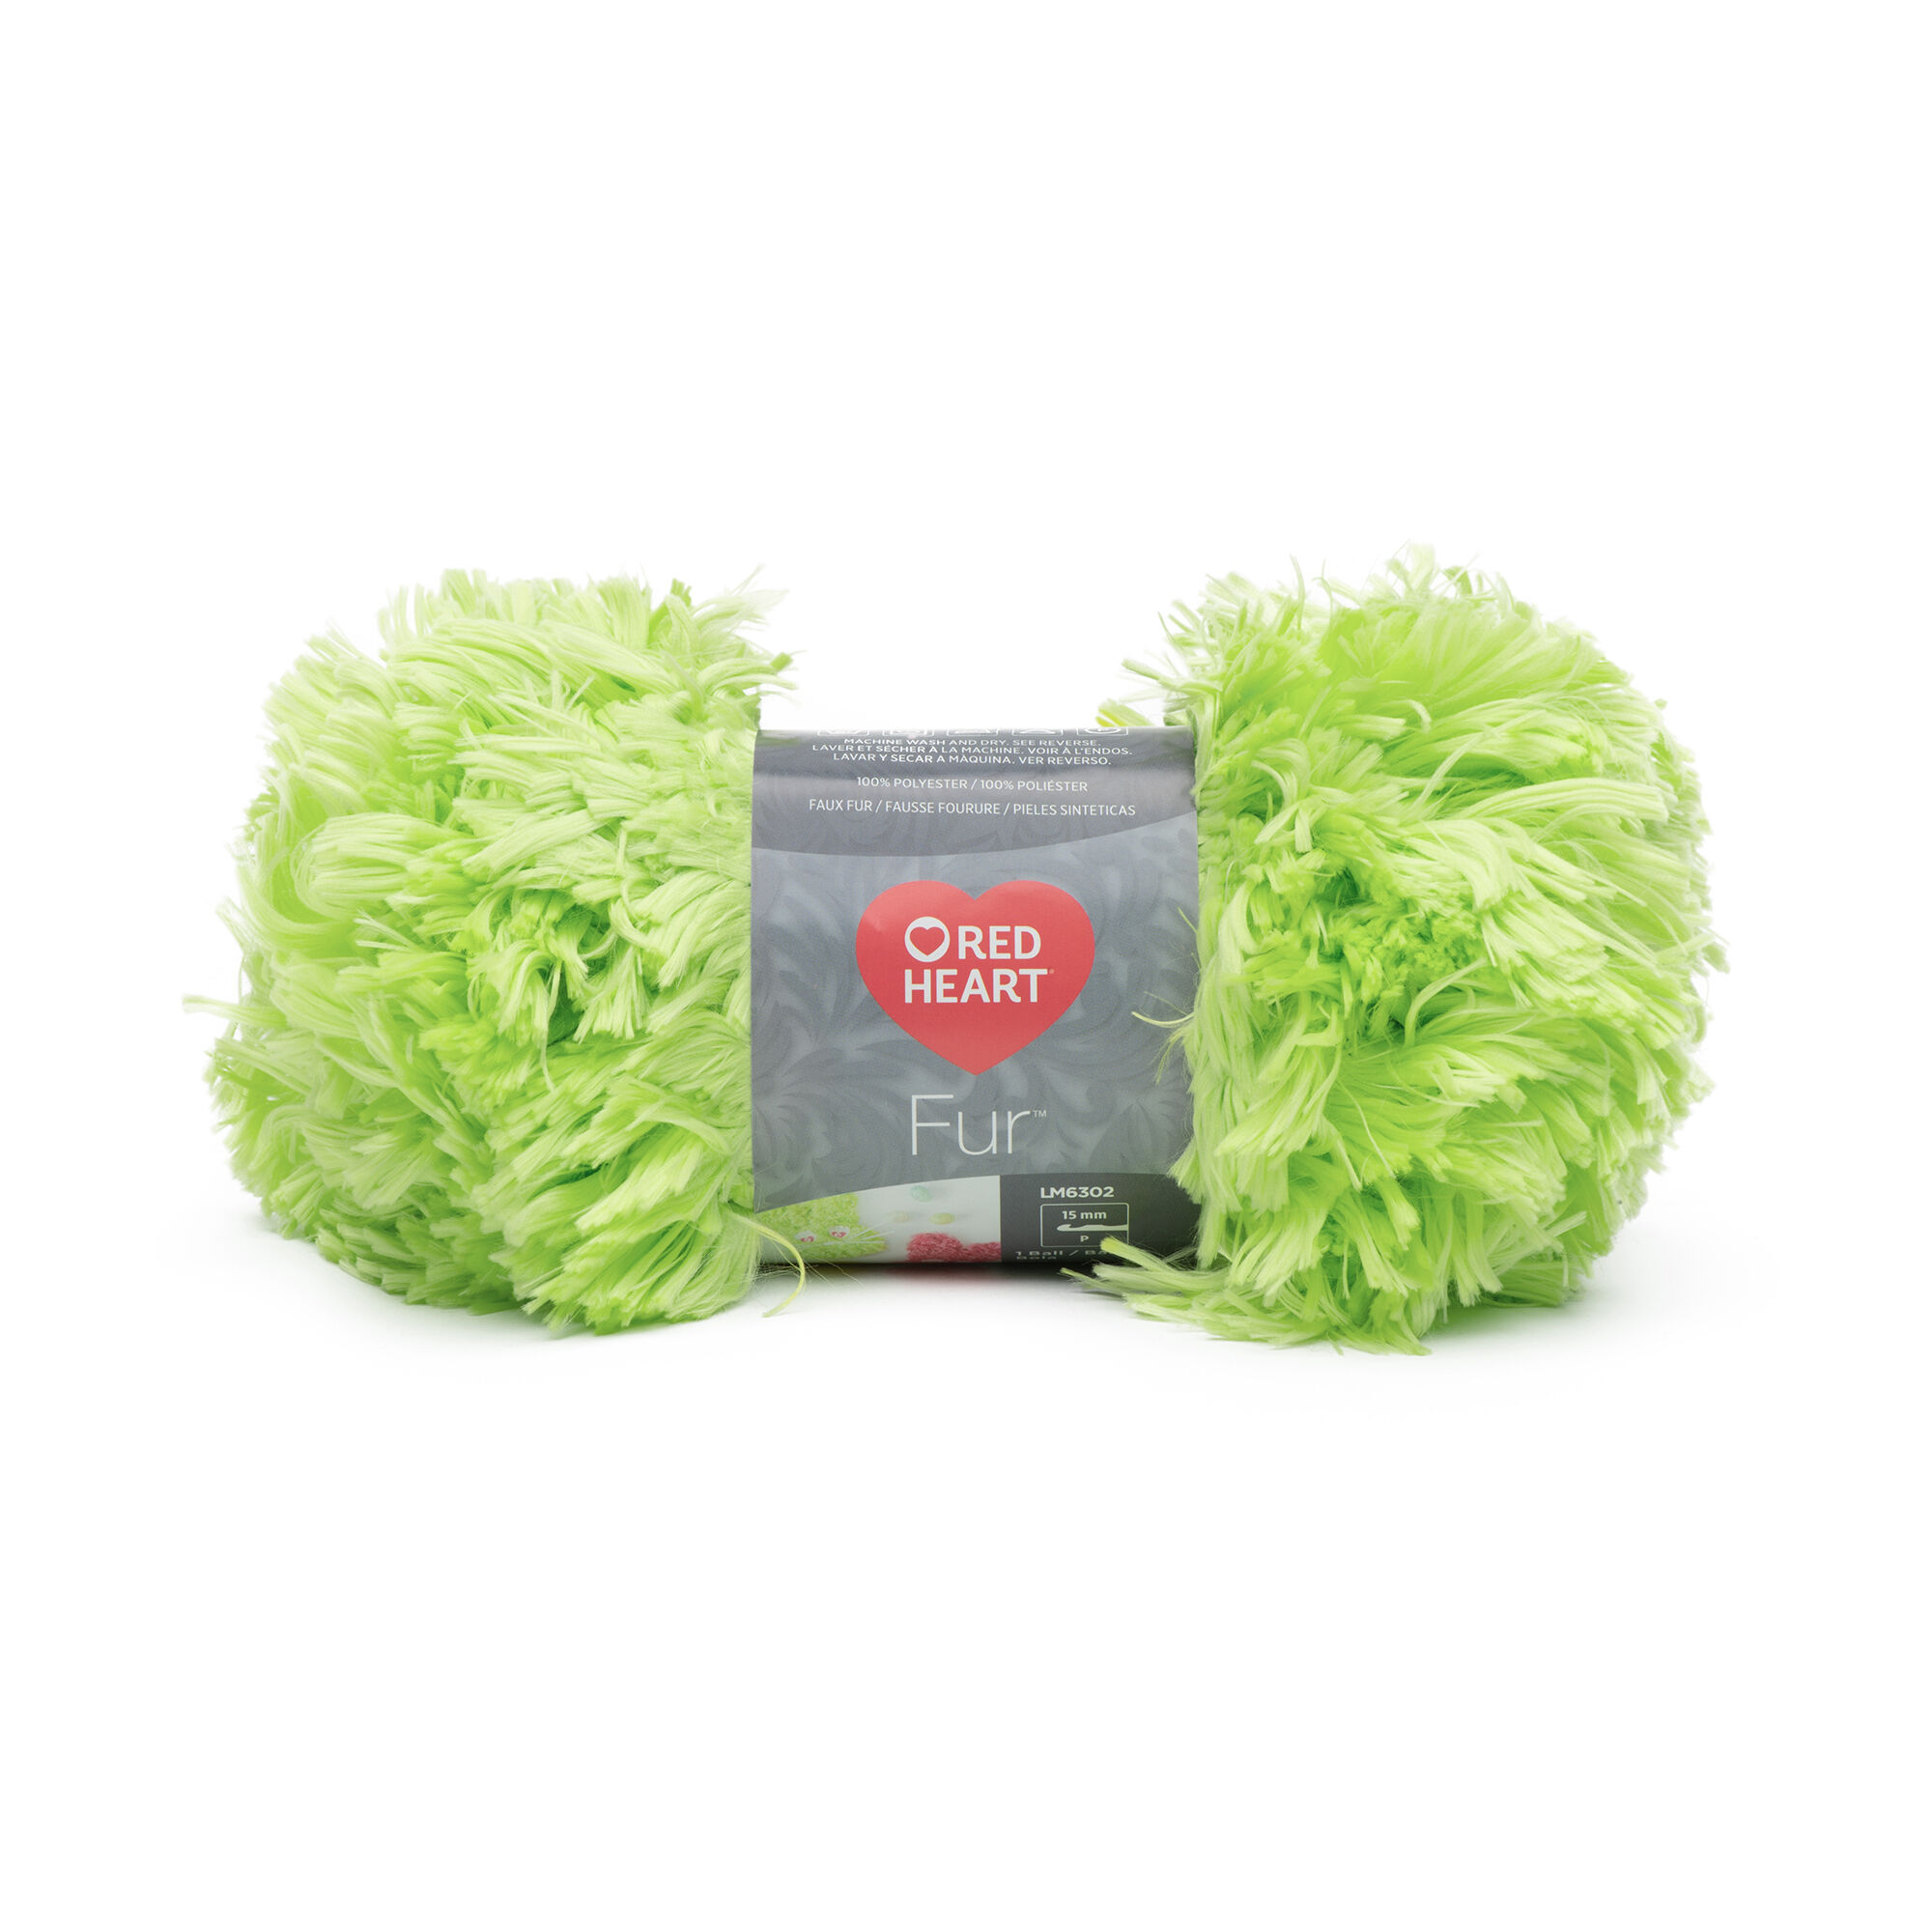 Red Heart Fur Yarn, Fur Lime